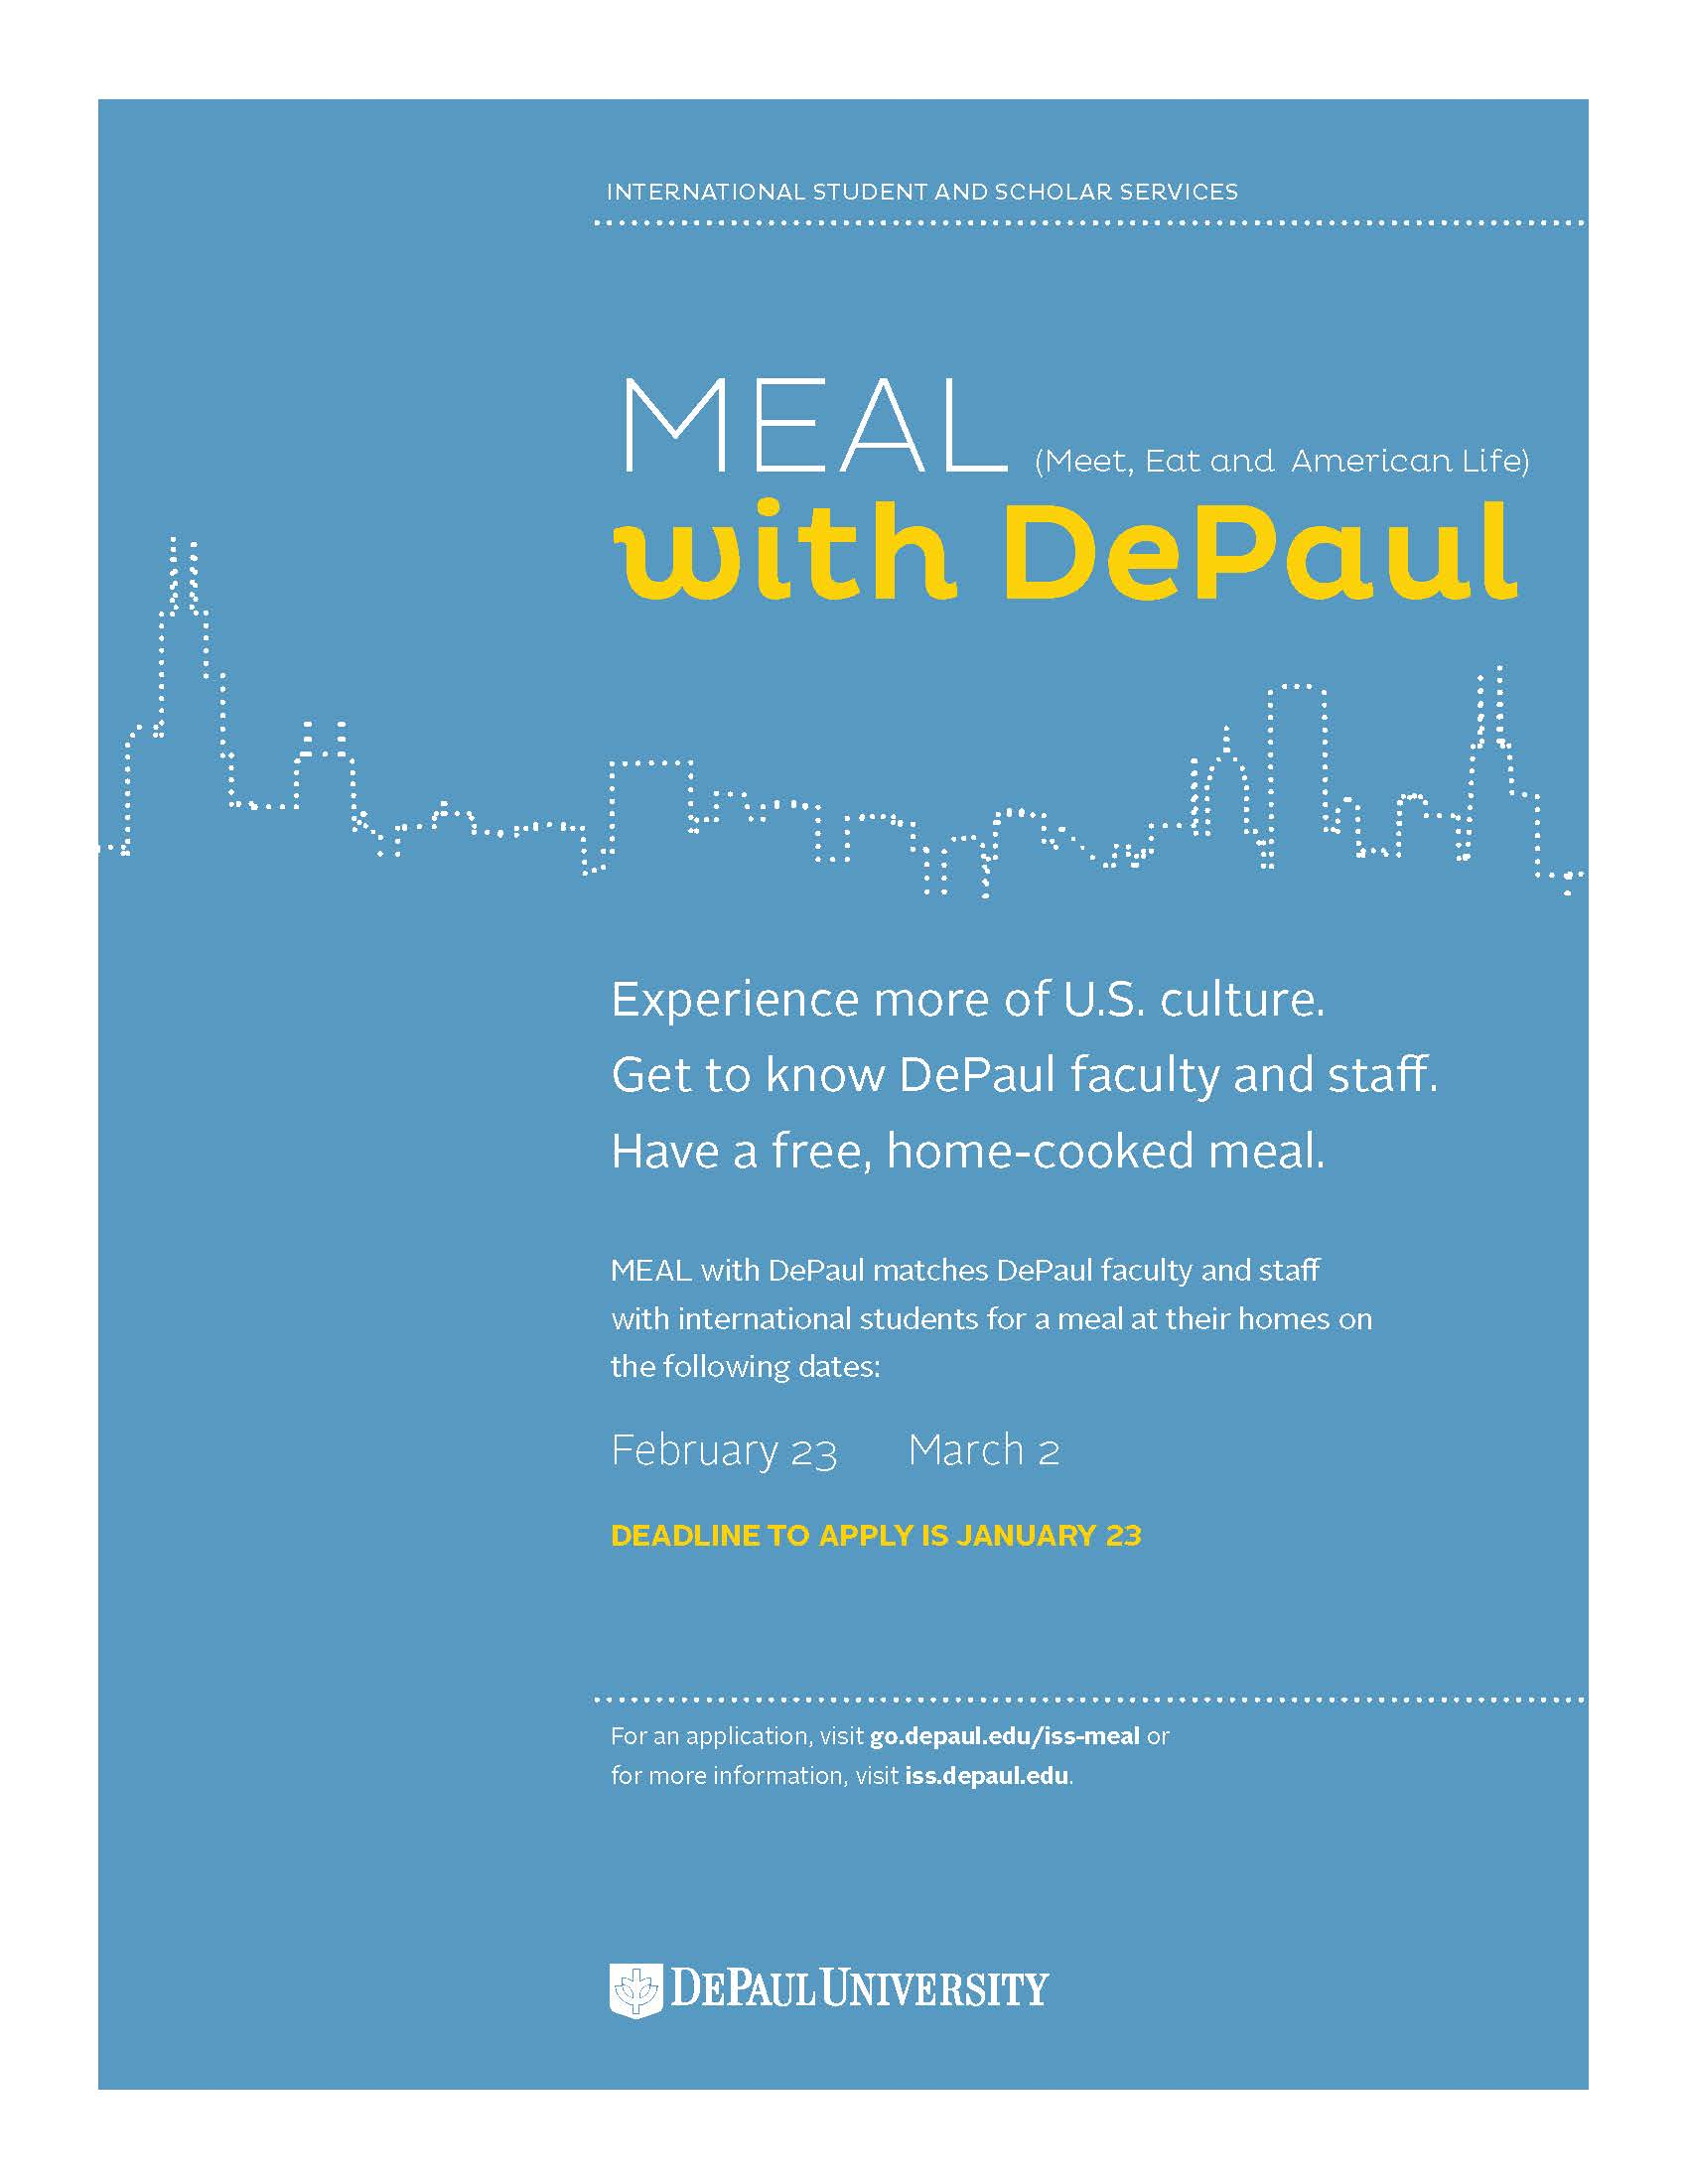 Winter 2019 MEAL with DePaul